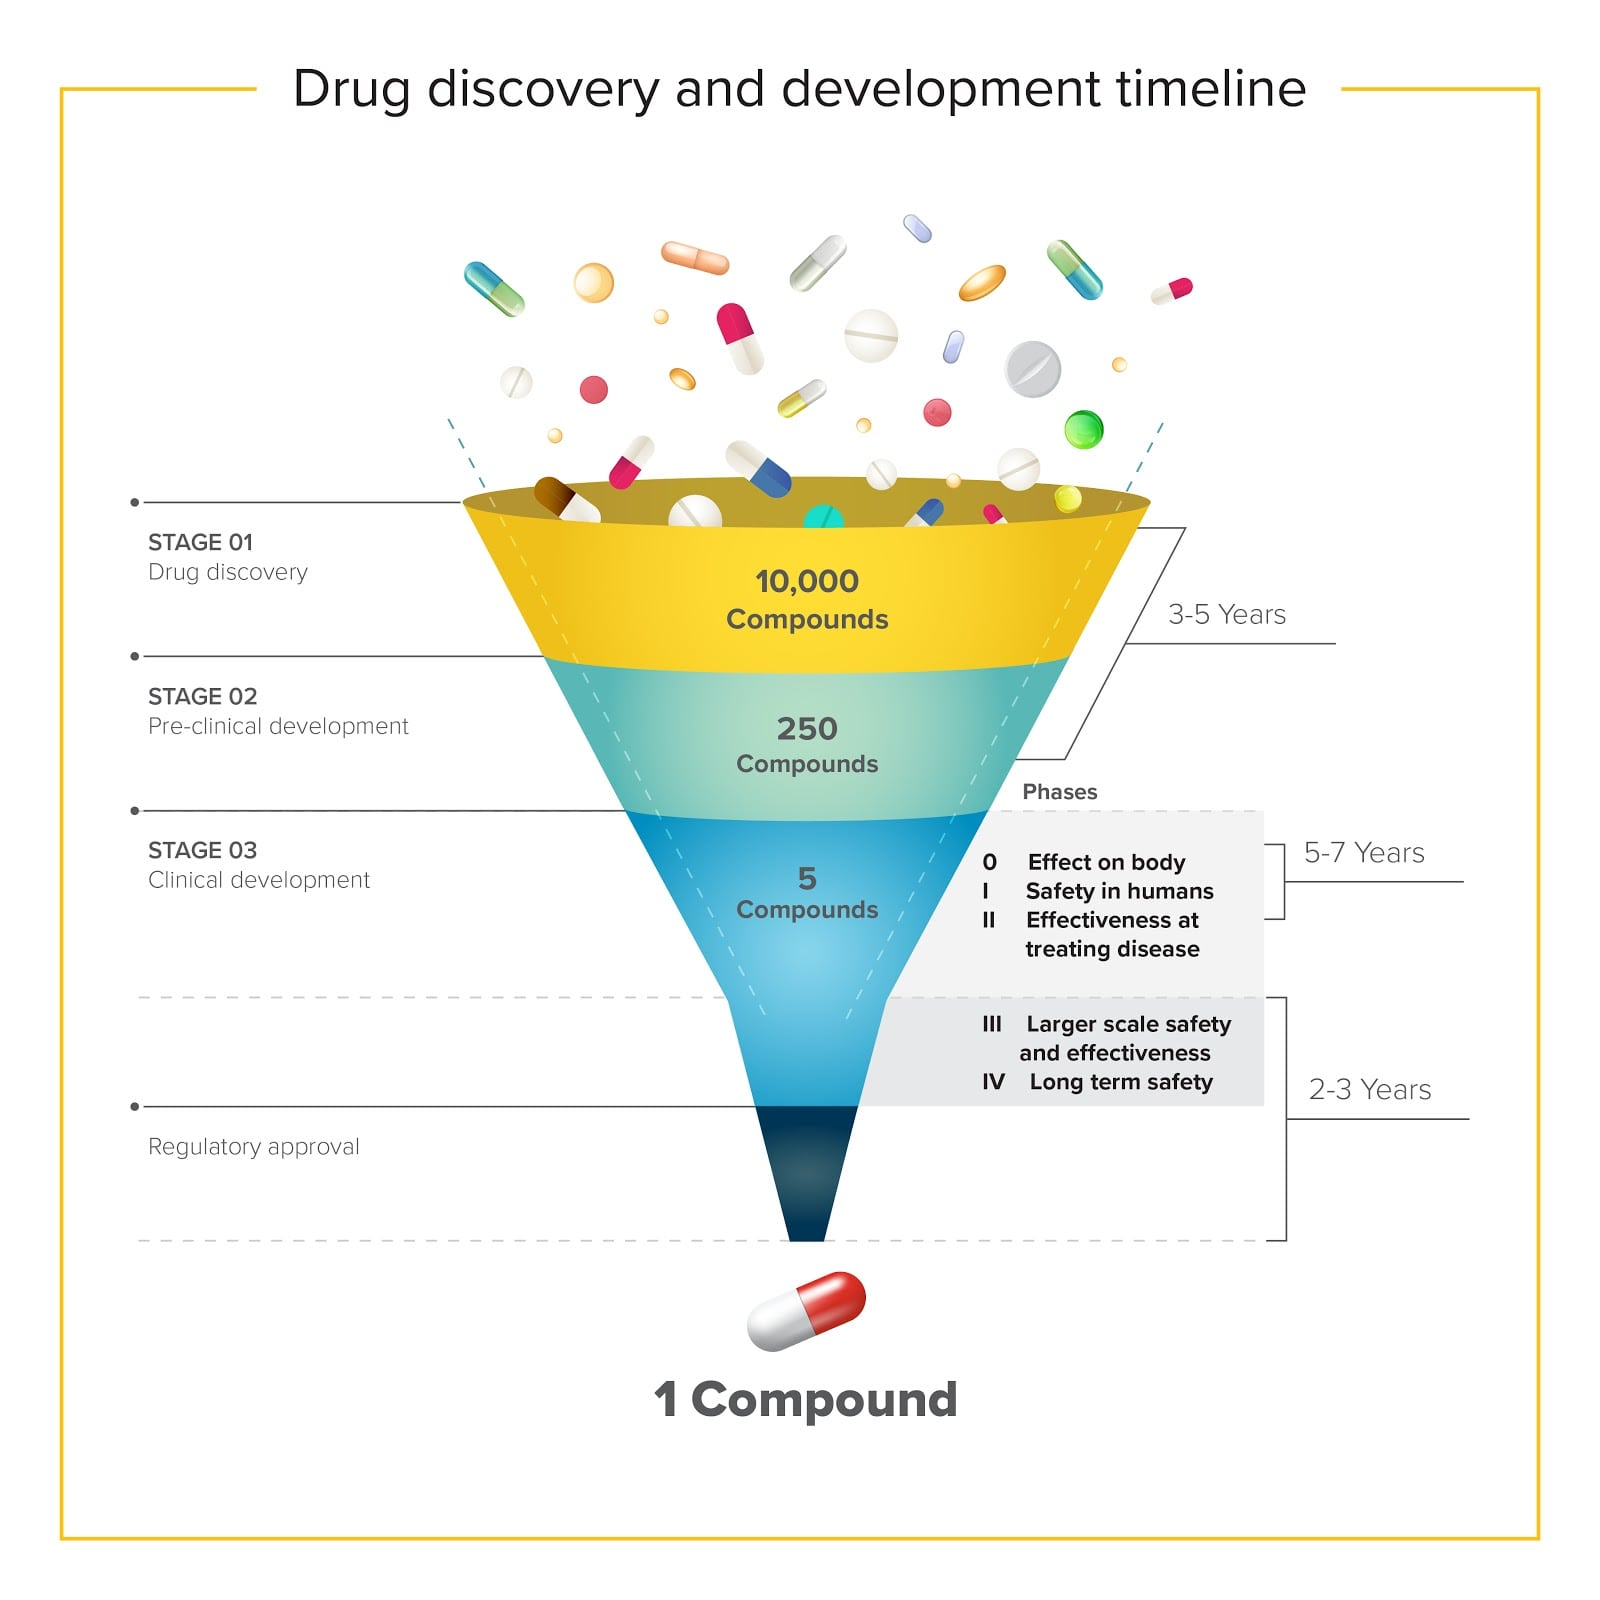 Drug discovery and development timeline